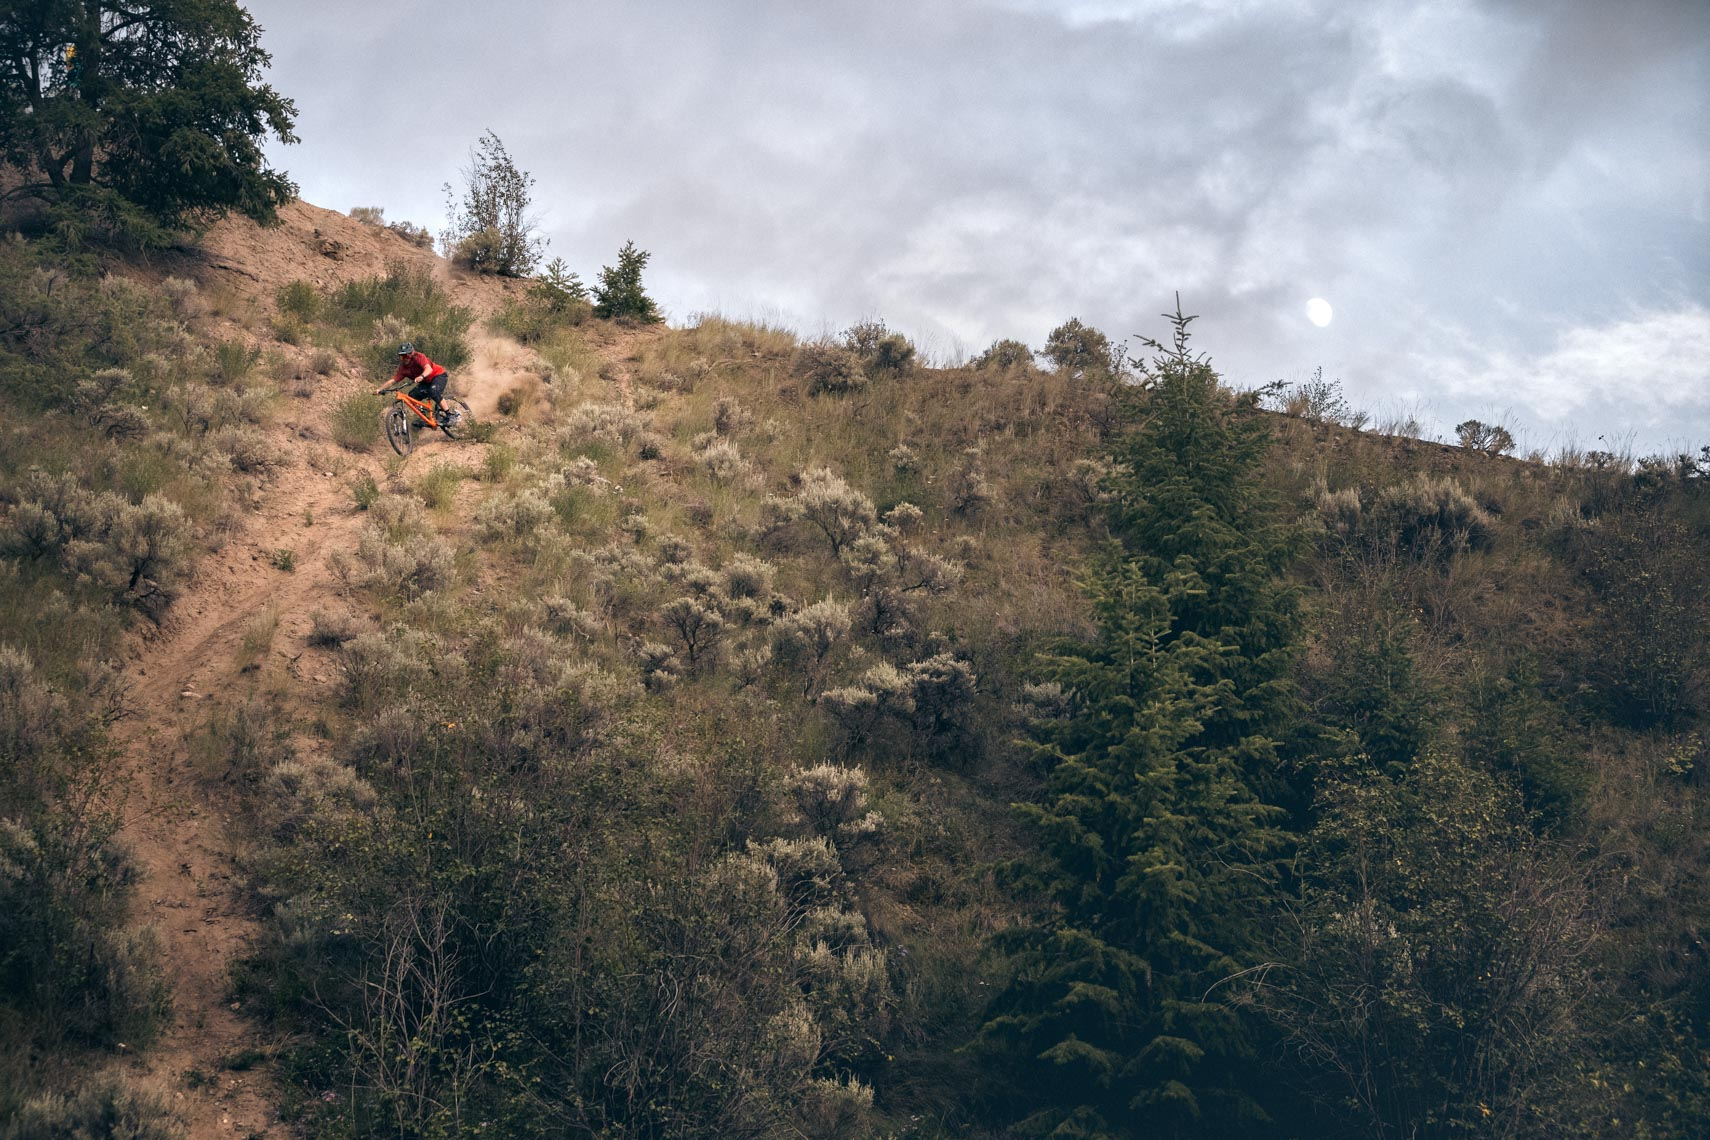 Mountain bike athlete descending in interior British Columbia, Canada